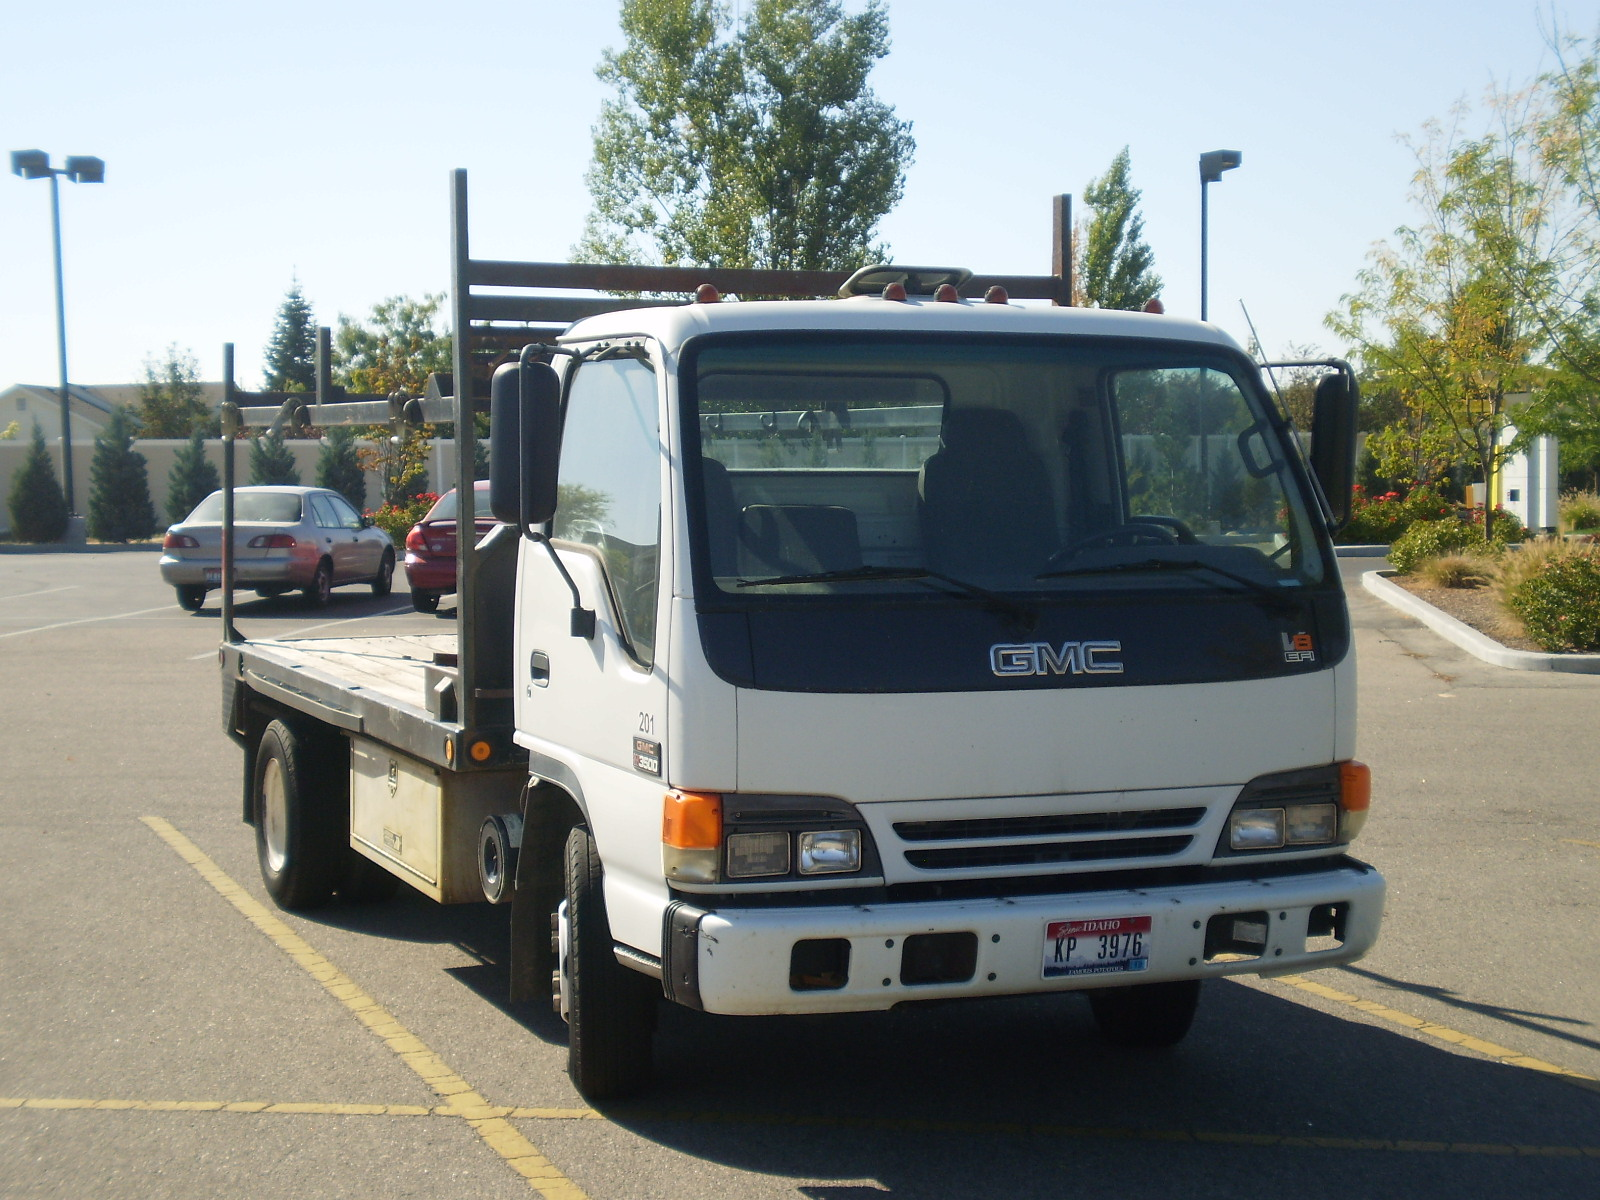 Truck and Van Car: Seized Vehicle Auctions - The Trucks